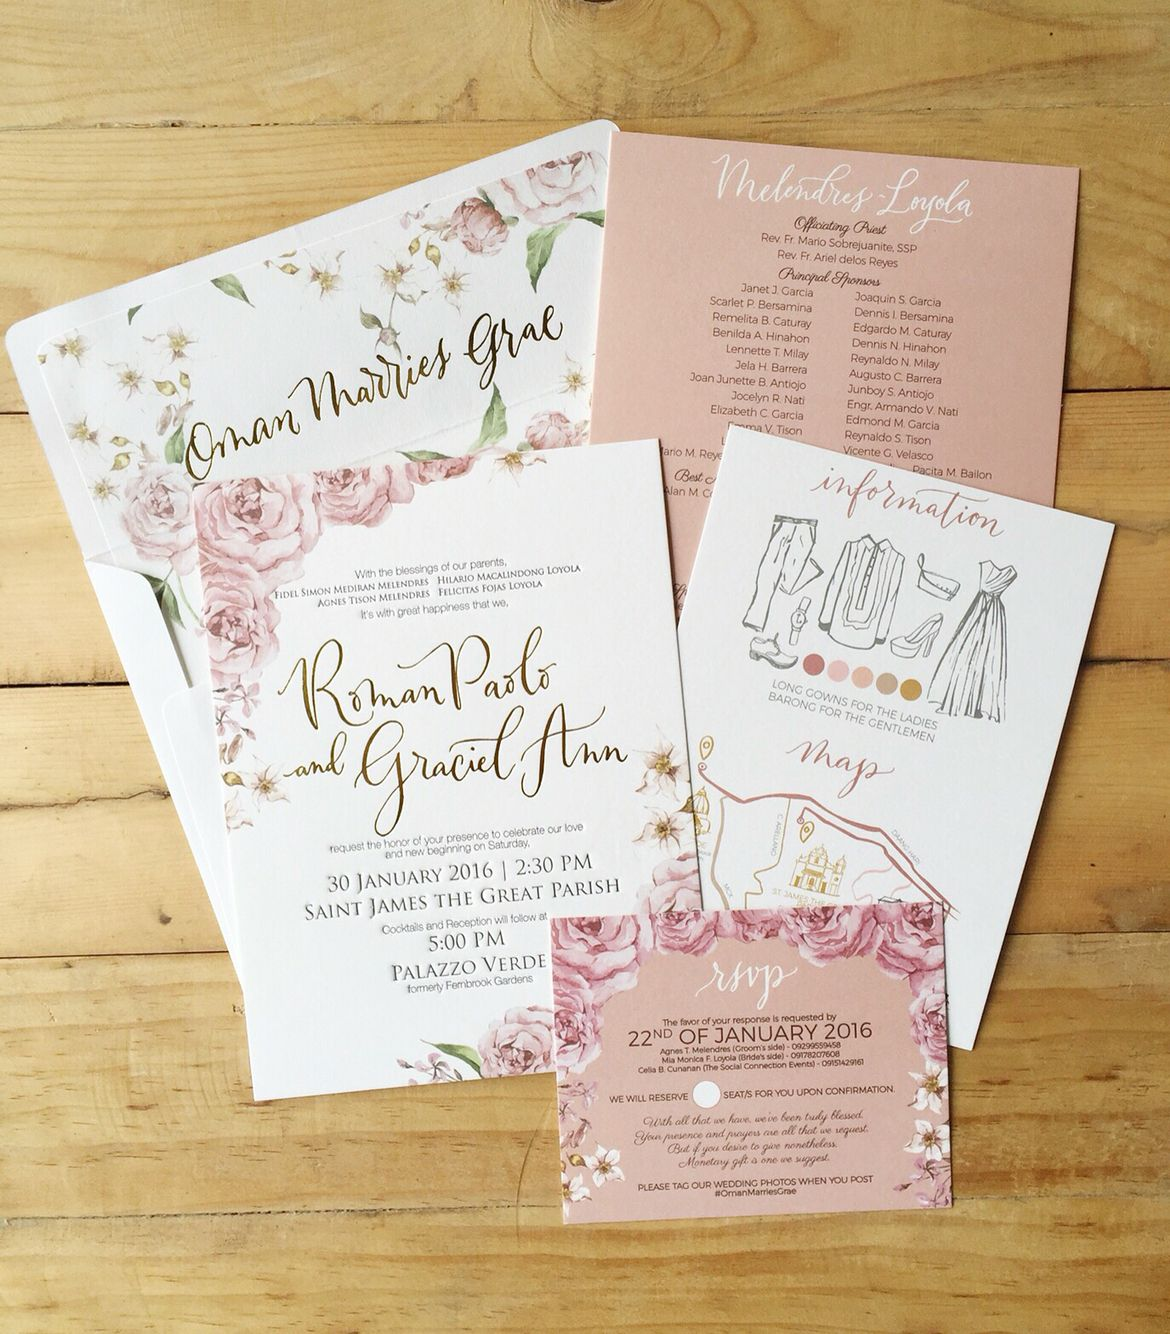 Roman Paolo and Graciel Ann Bespoke Suite -- Old Rose Wedding Invitation by  Ink Scribbler | Rose wedding invitations, Wedding invitations, Old rose  wedding